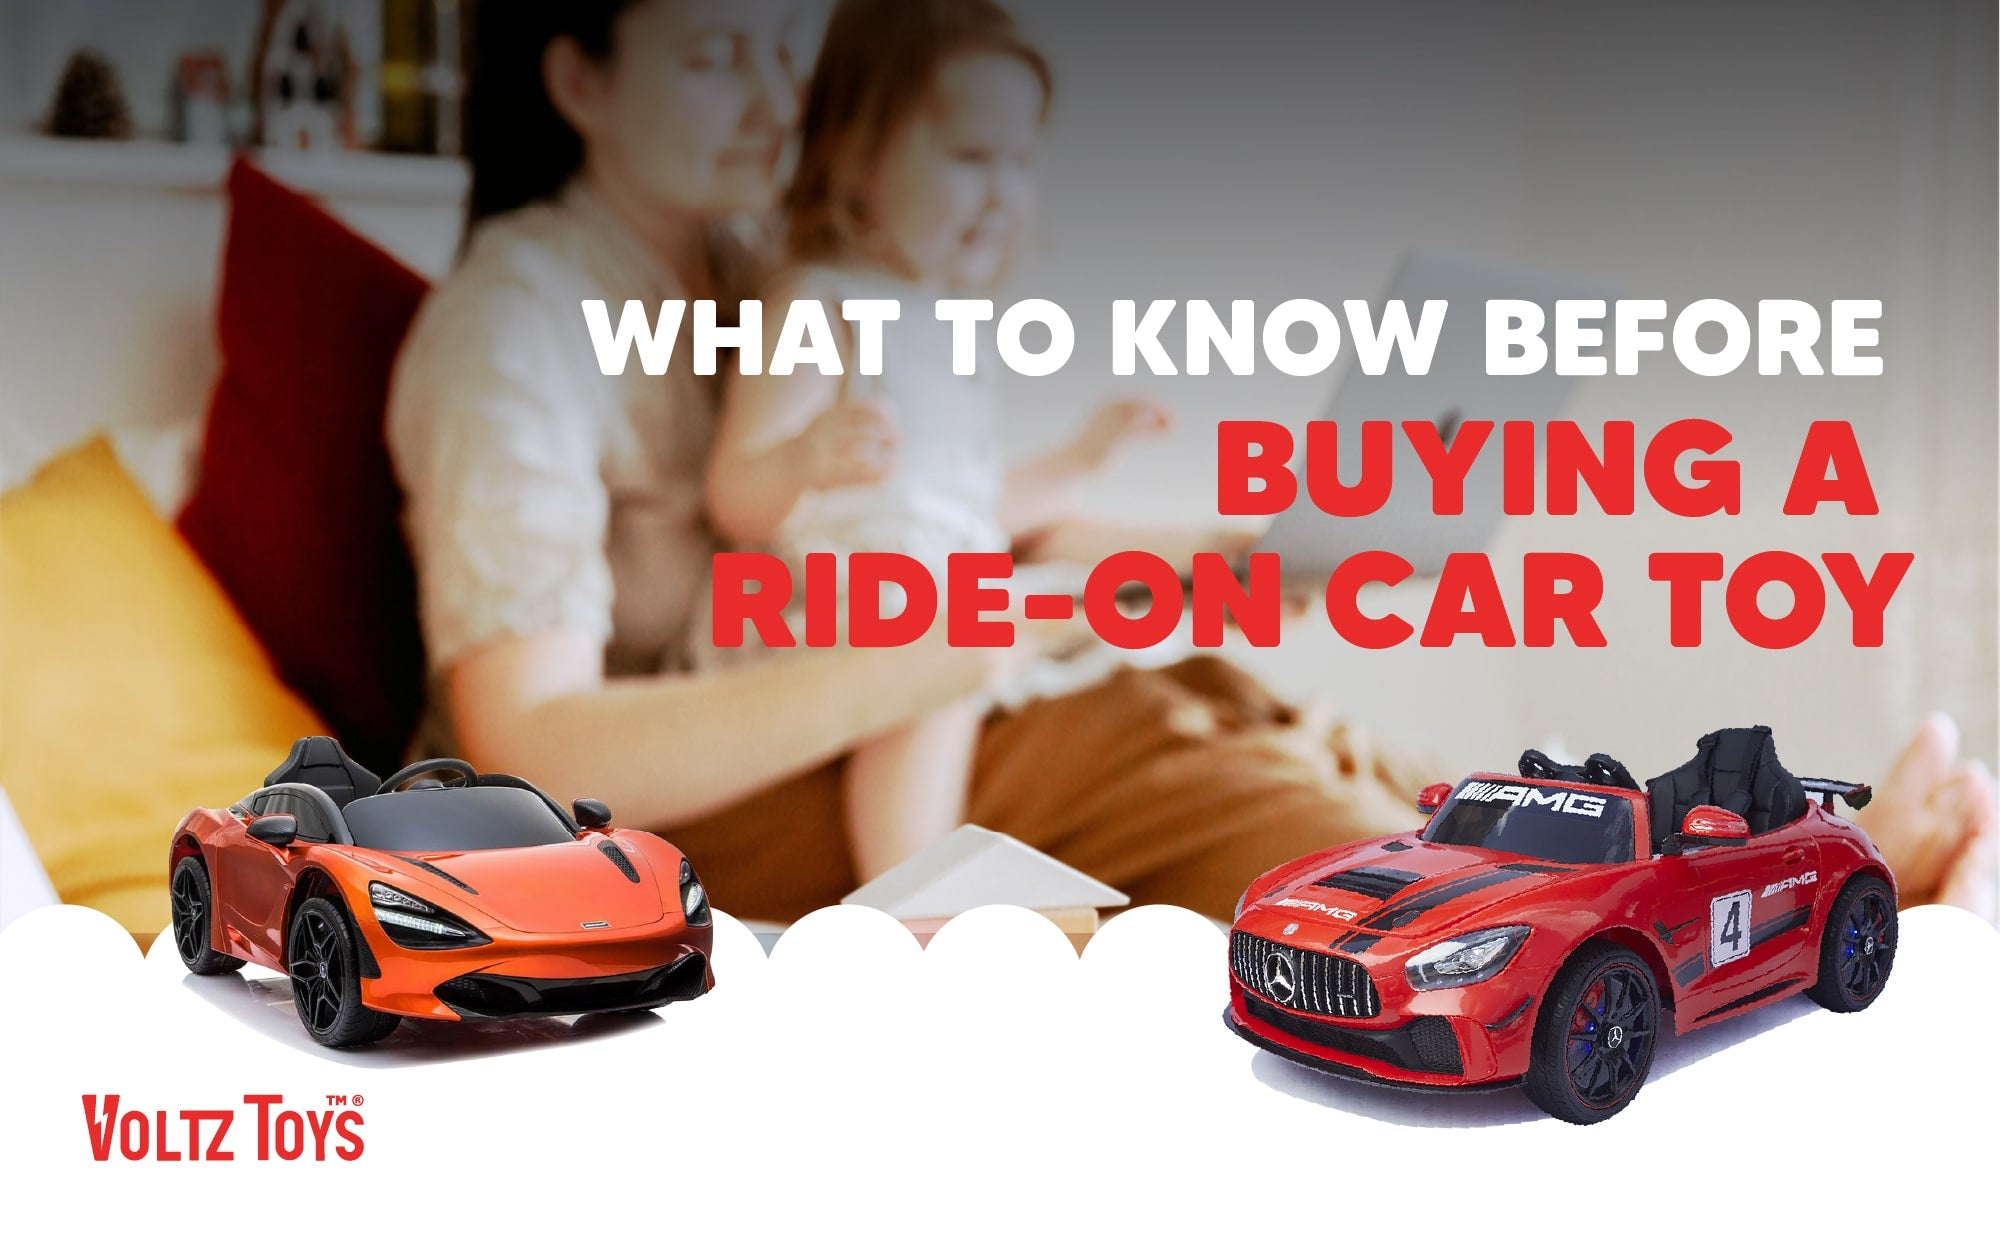 What to Know Before Buying a Ride-On Car Toy